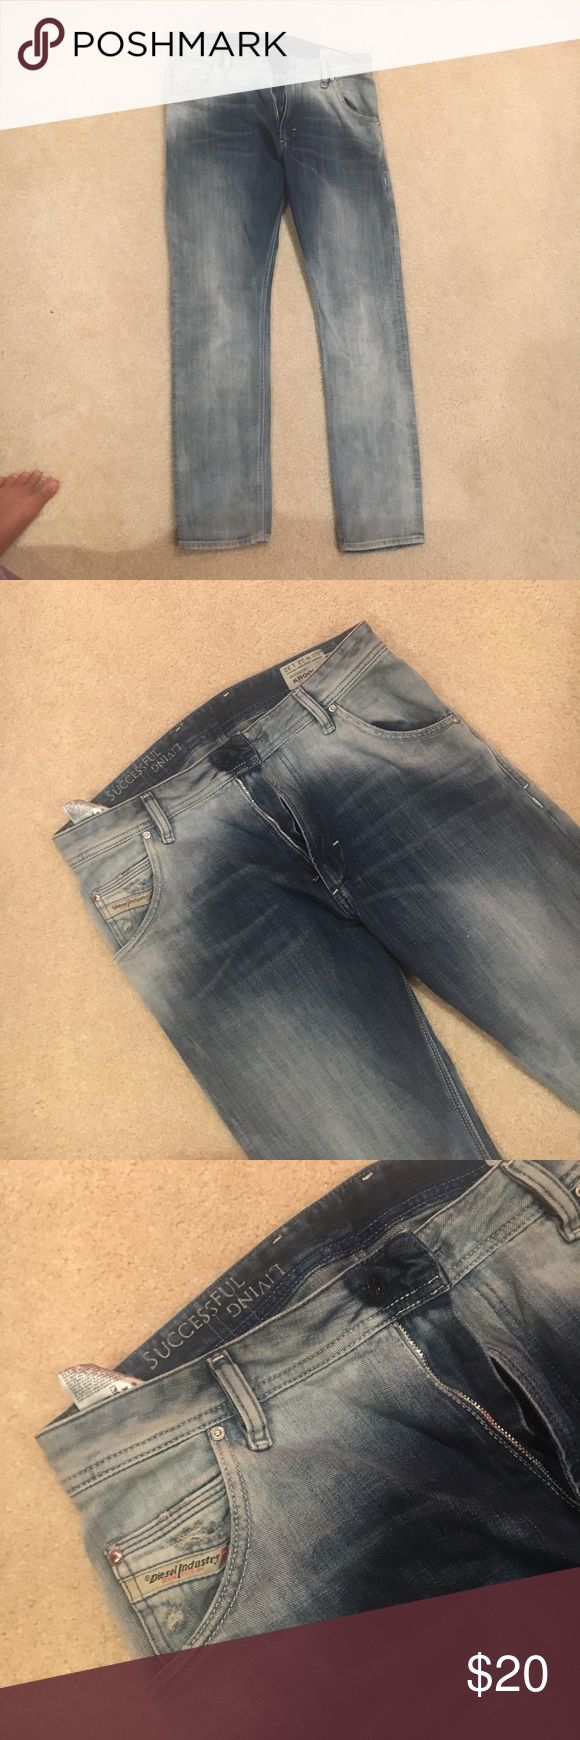 Diesel Denim Kepler Jeans Like new, Diesel denim krooley regular slim carrot 32/33 Diesel Jeans Straight